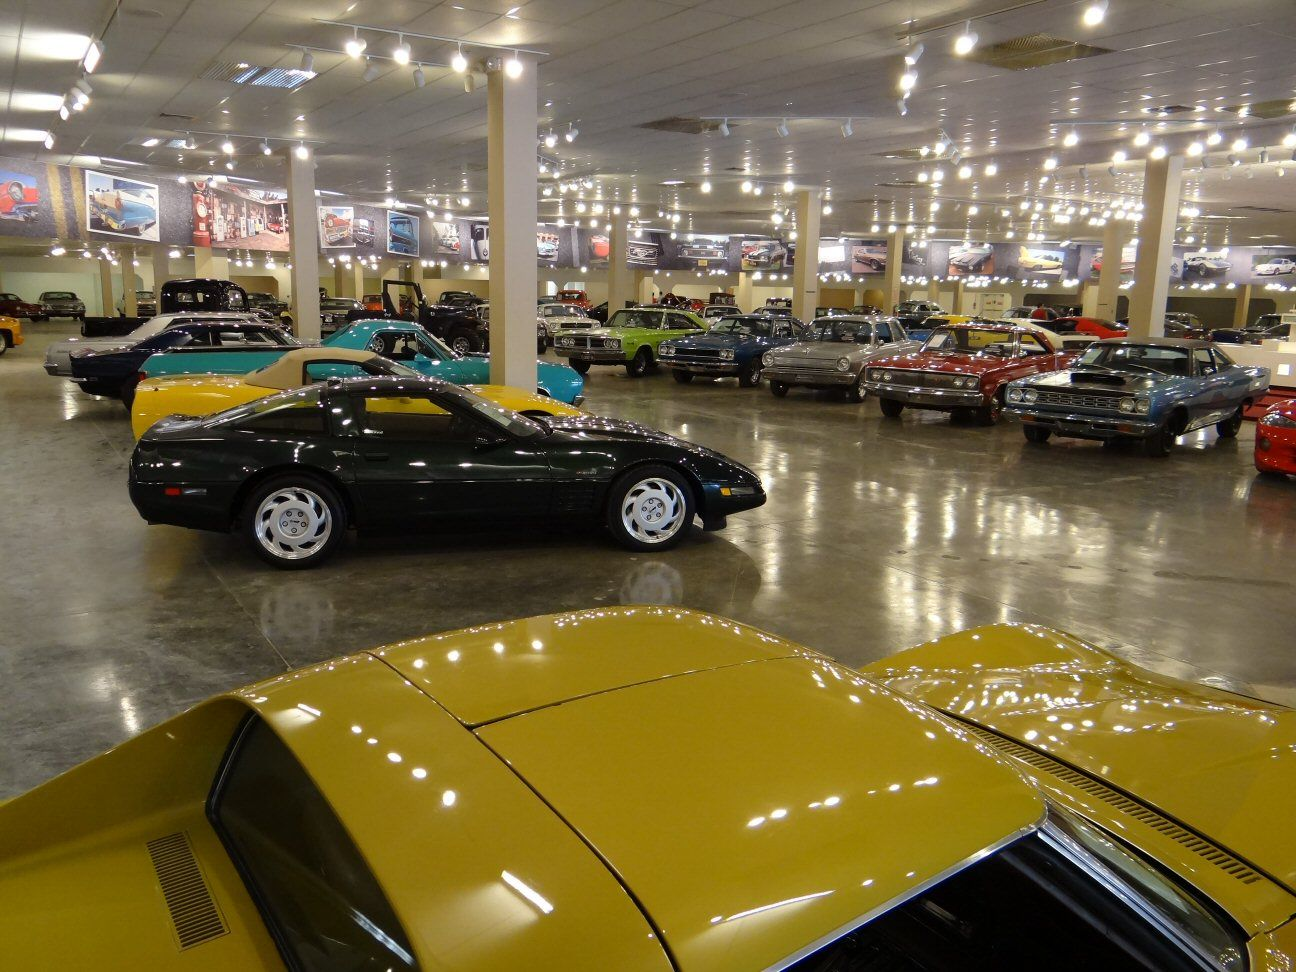 Gateway Classic Cars & Museum has cars to view and cars to purchase ...